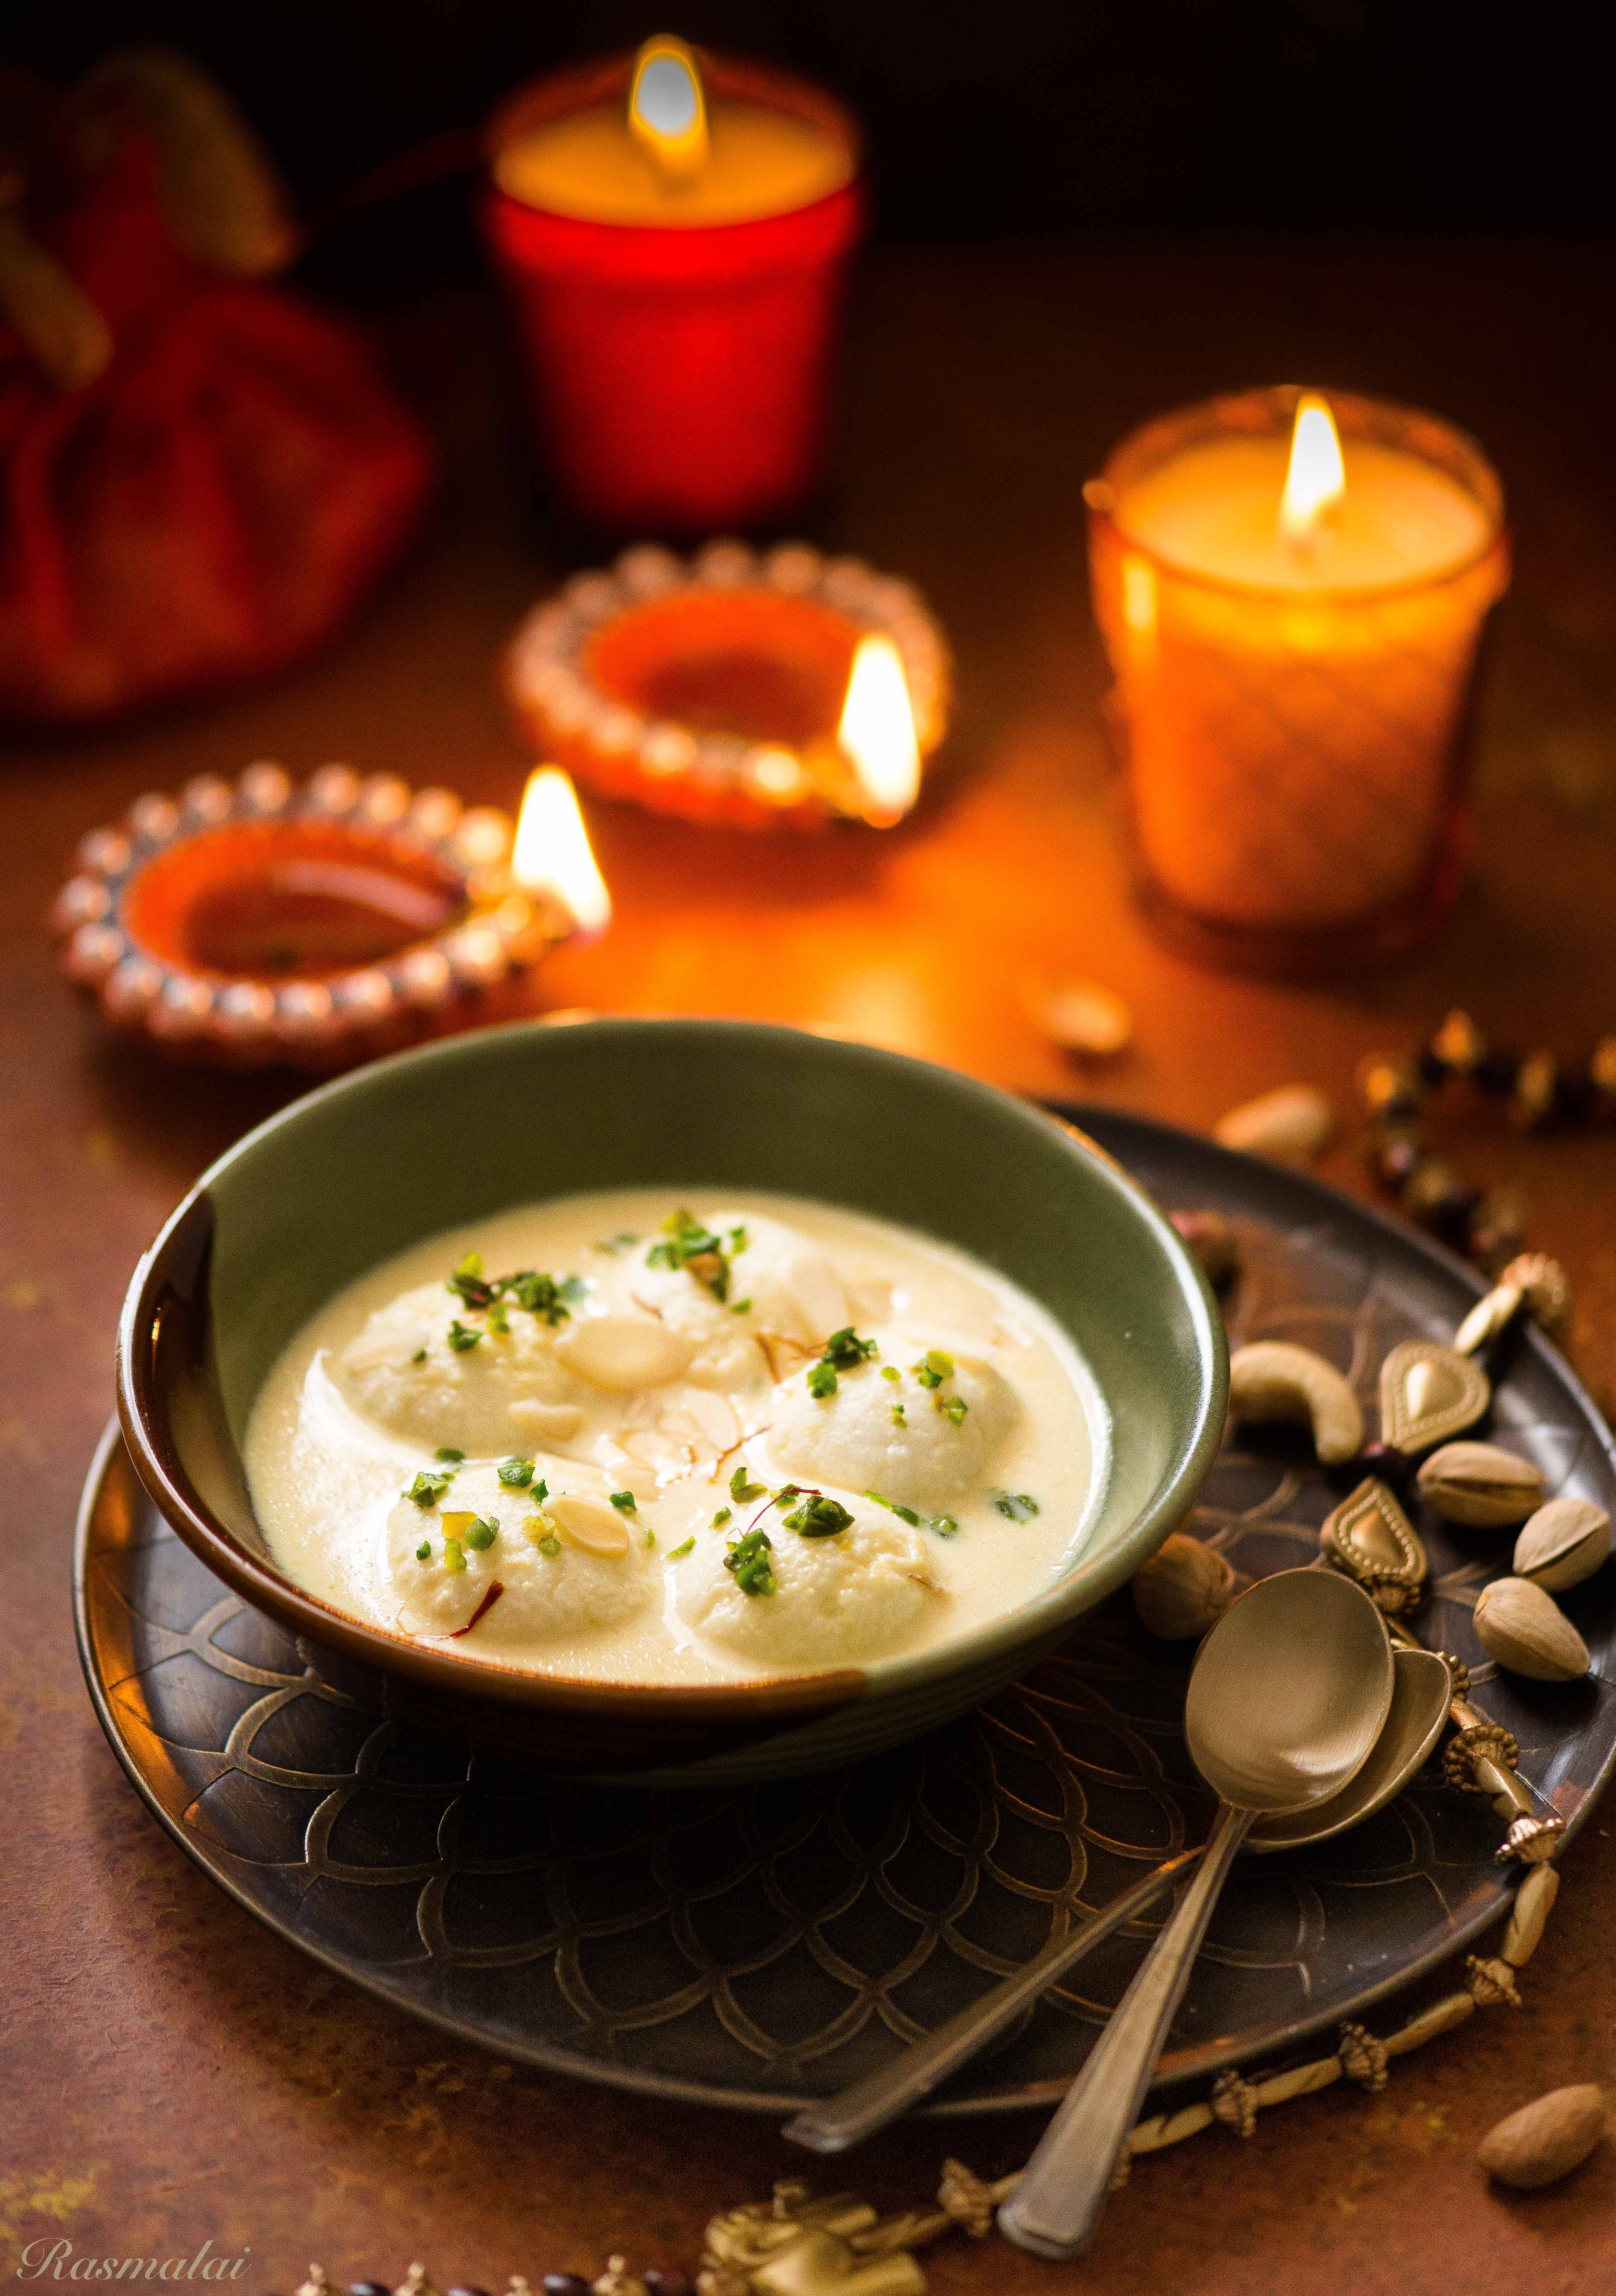 Rasmalai And Diwali Wishes